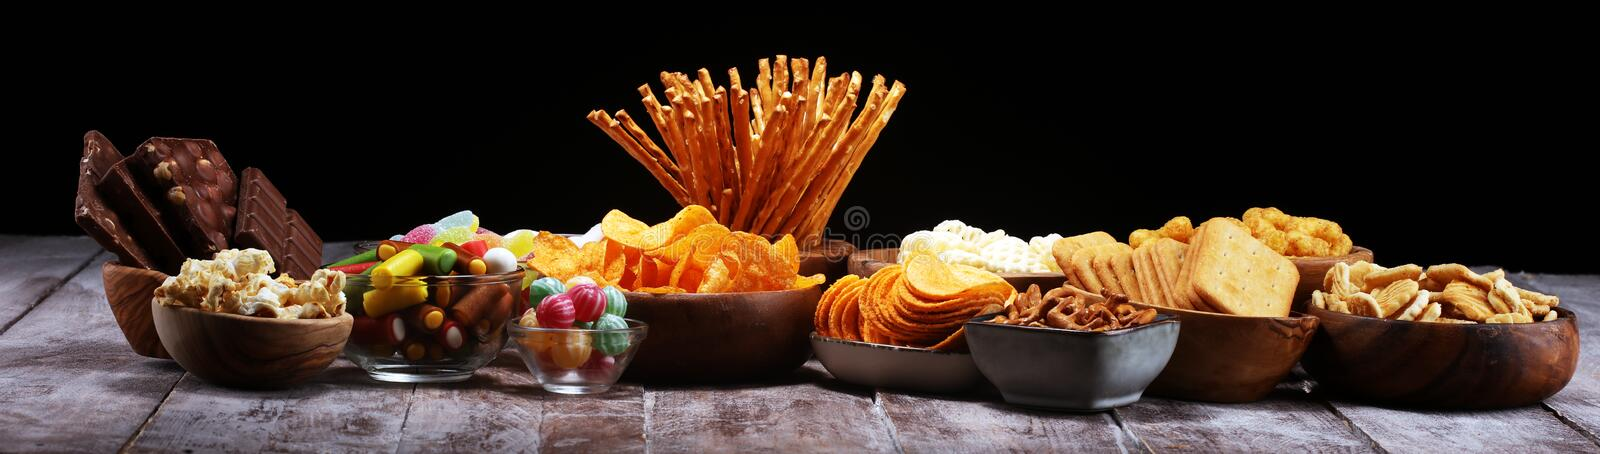 Salty snacks. Pretzels, chips, crackers in wooden bowls on table stock images